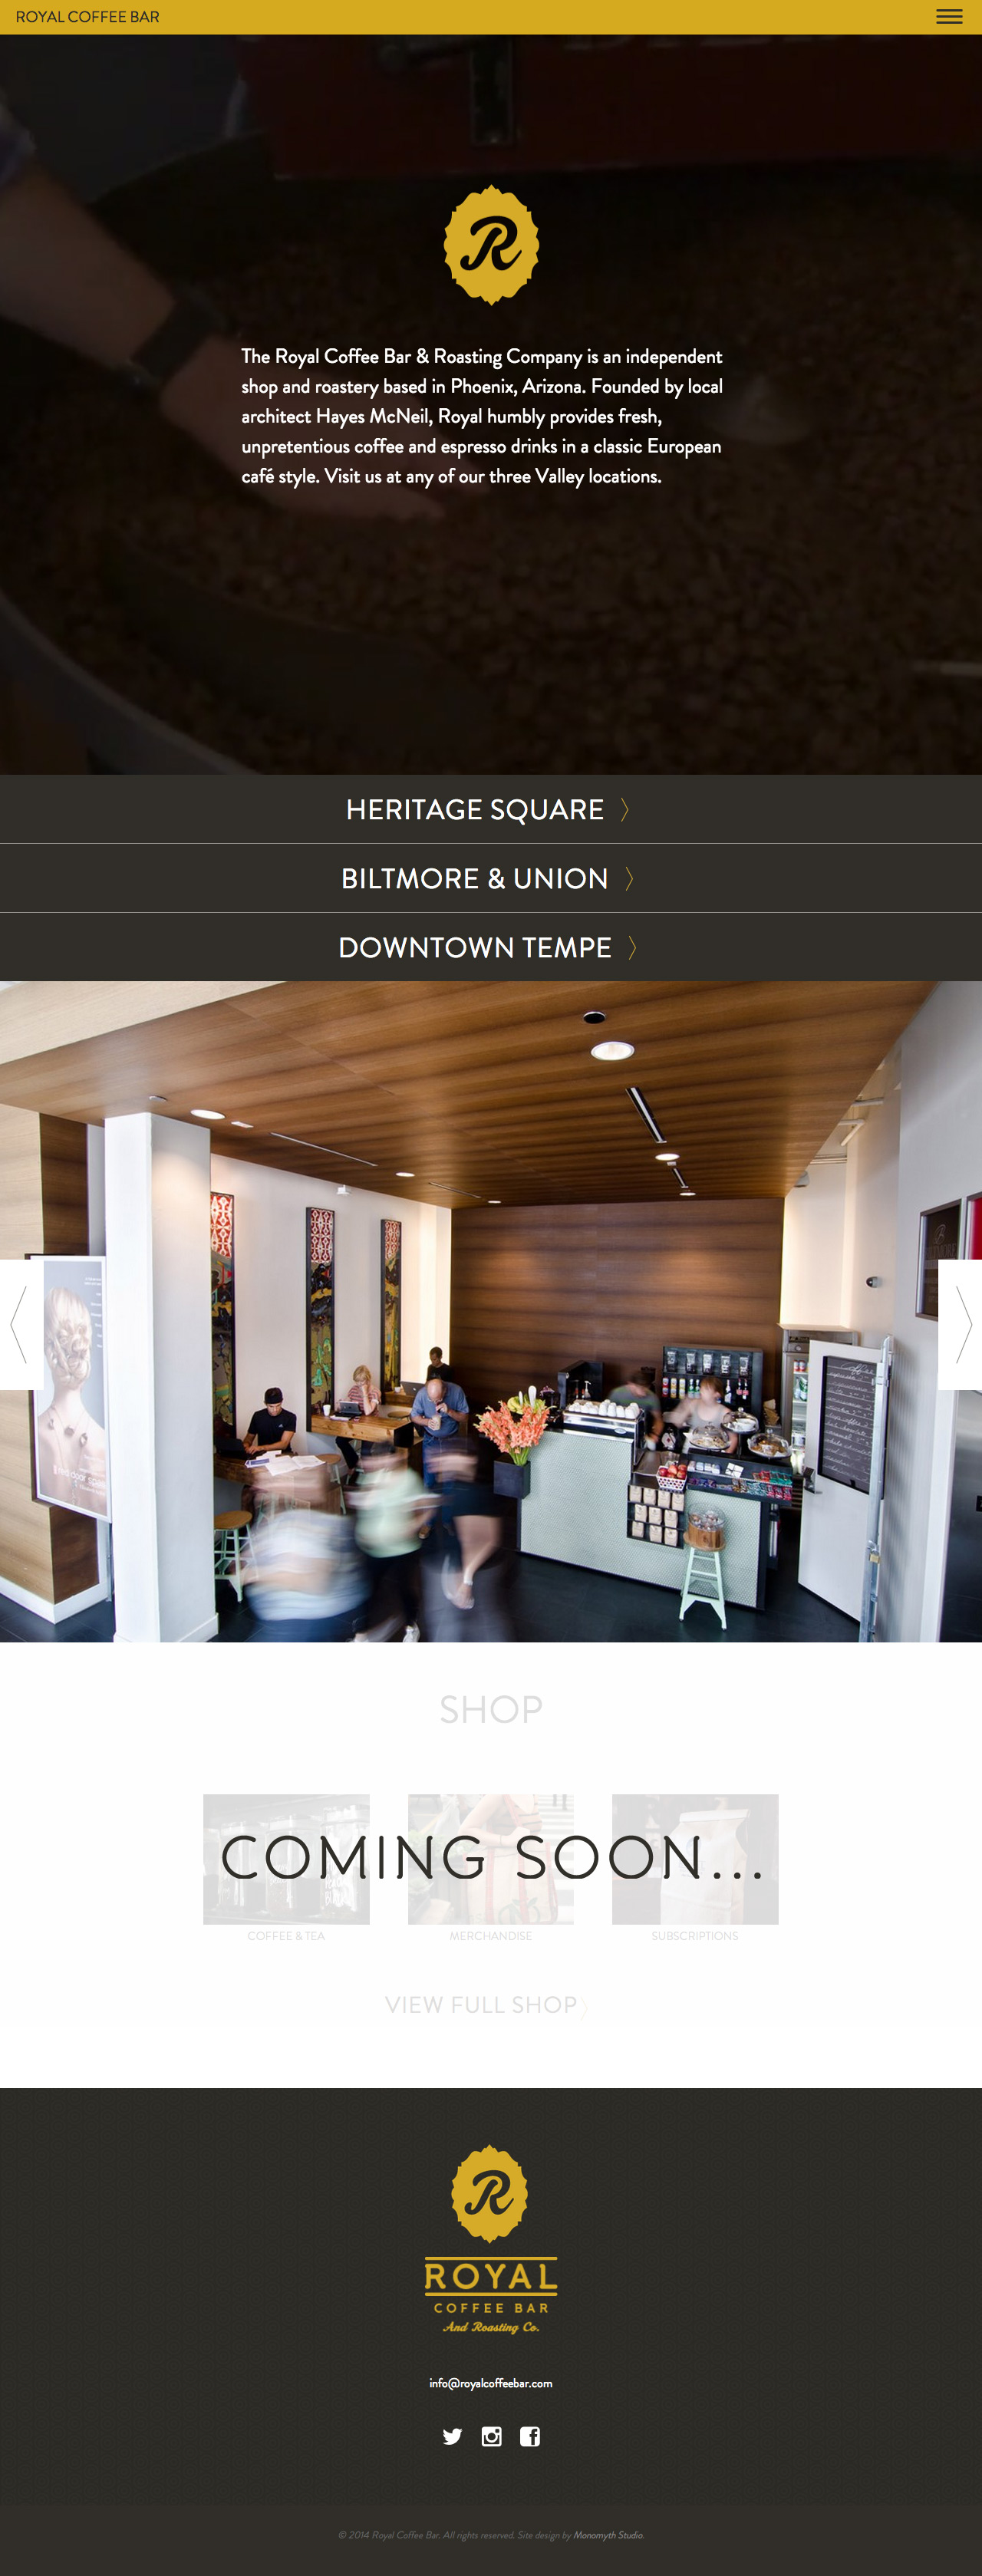 Royal Coffee Bar Website Screenshot